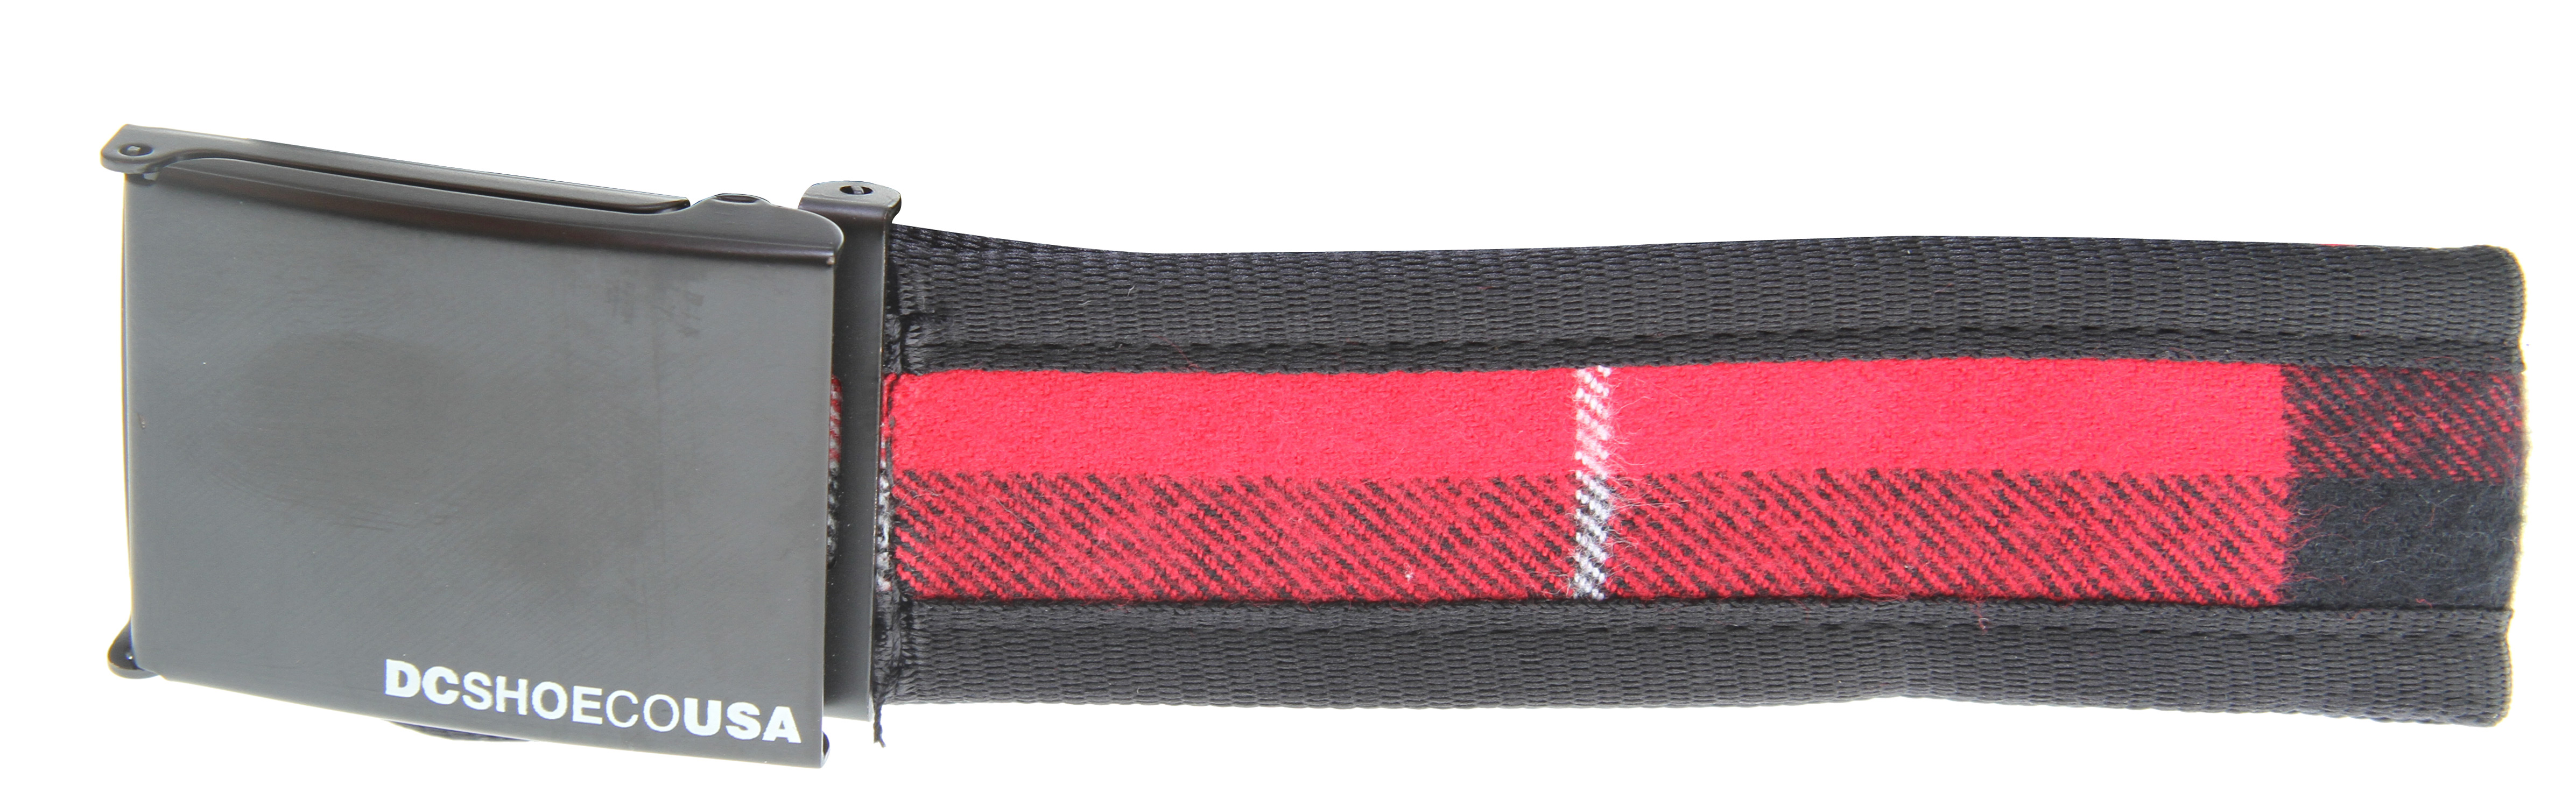 The DC Jacked Belt is an awesome belt from DC! Contrasting colors are sure to get you noticed, the DC logo on the buckle is sure to get you noticed and appreciated. The buckle is all metal, so it's sure to keep your pants where you want them. The perfect belt to keep your drawers covered-you know those things have holes in them, don't you Key Features of the DC Jacked Belt:  Cotton scout belt  Plaid woven inset  Metal buckle and tip with screenprint  100% cotton - $11.95